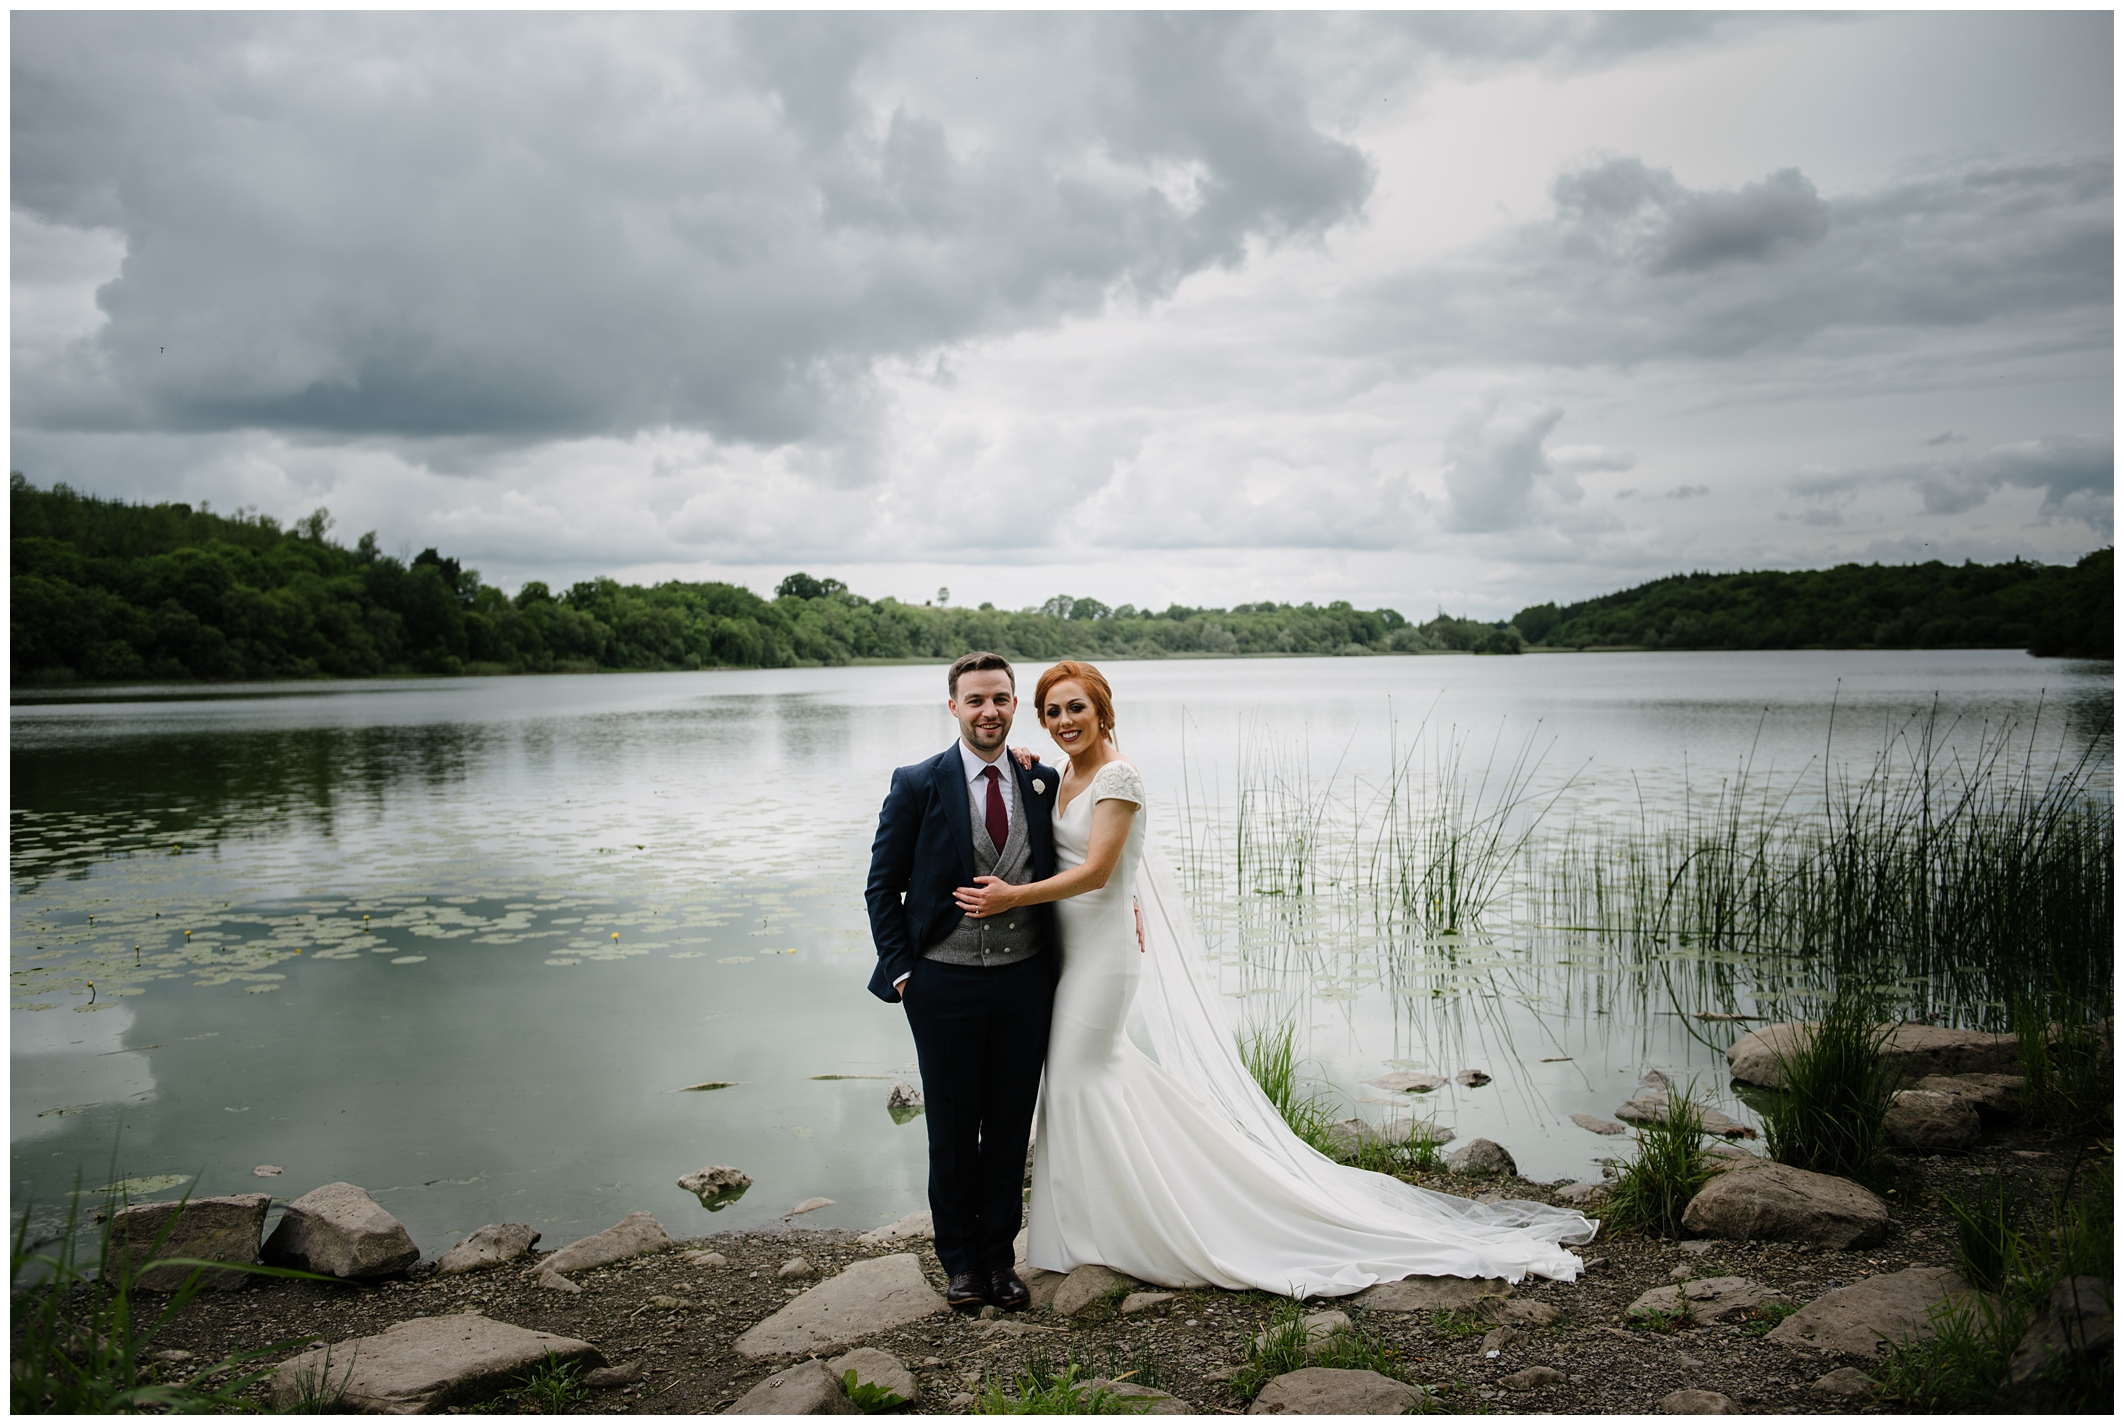 sinead_emmet_farnham_estate_wedding_jude_browne_photography_0123.jpg